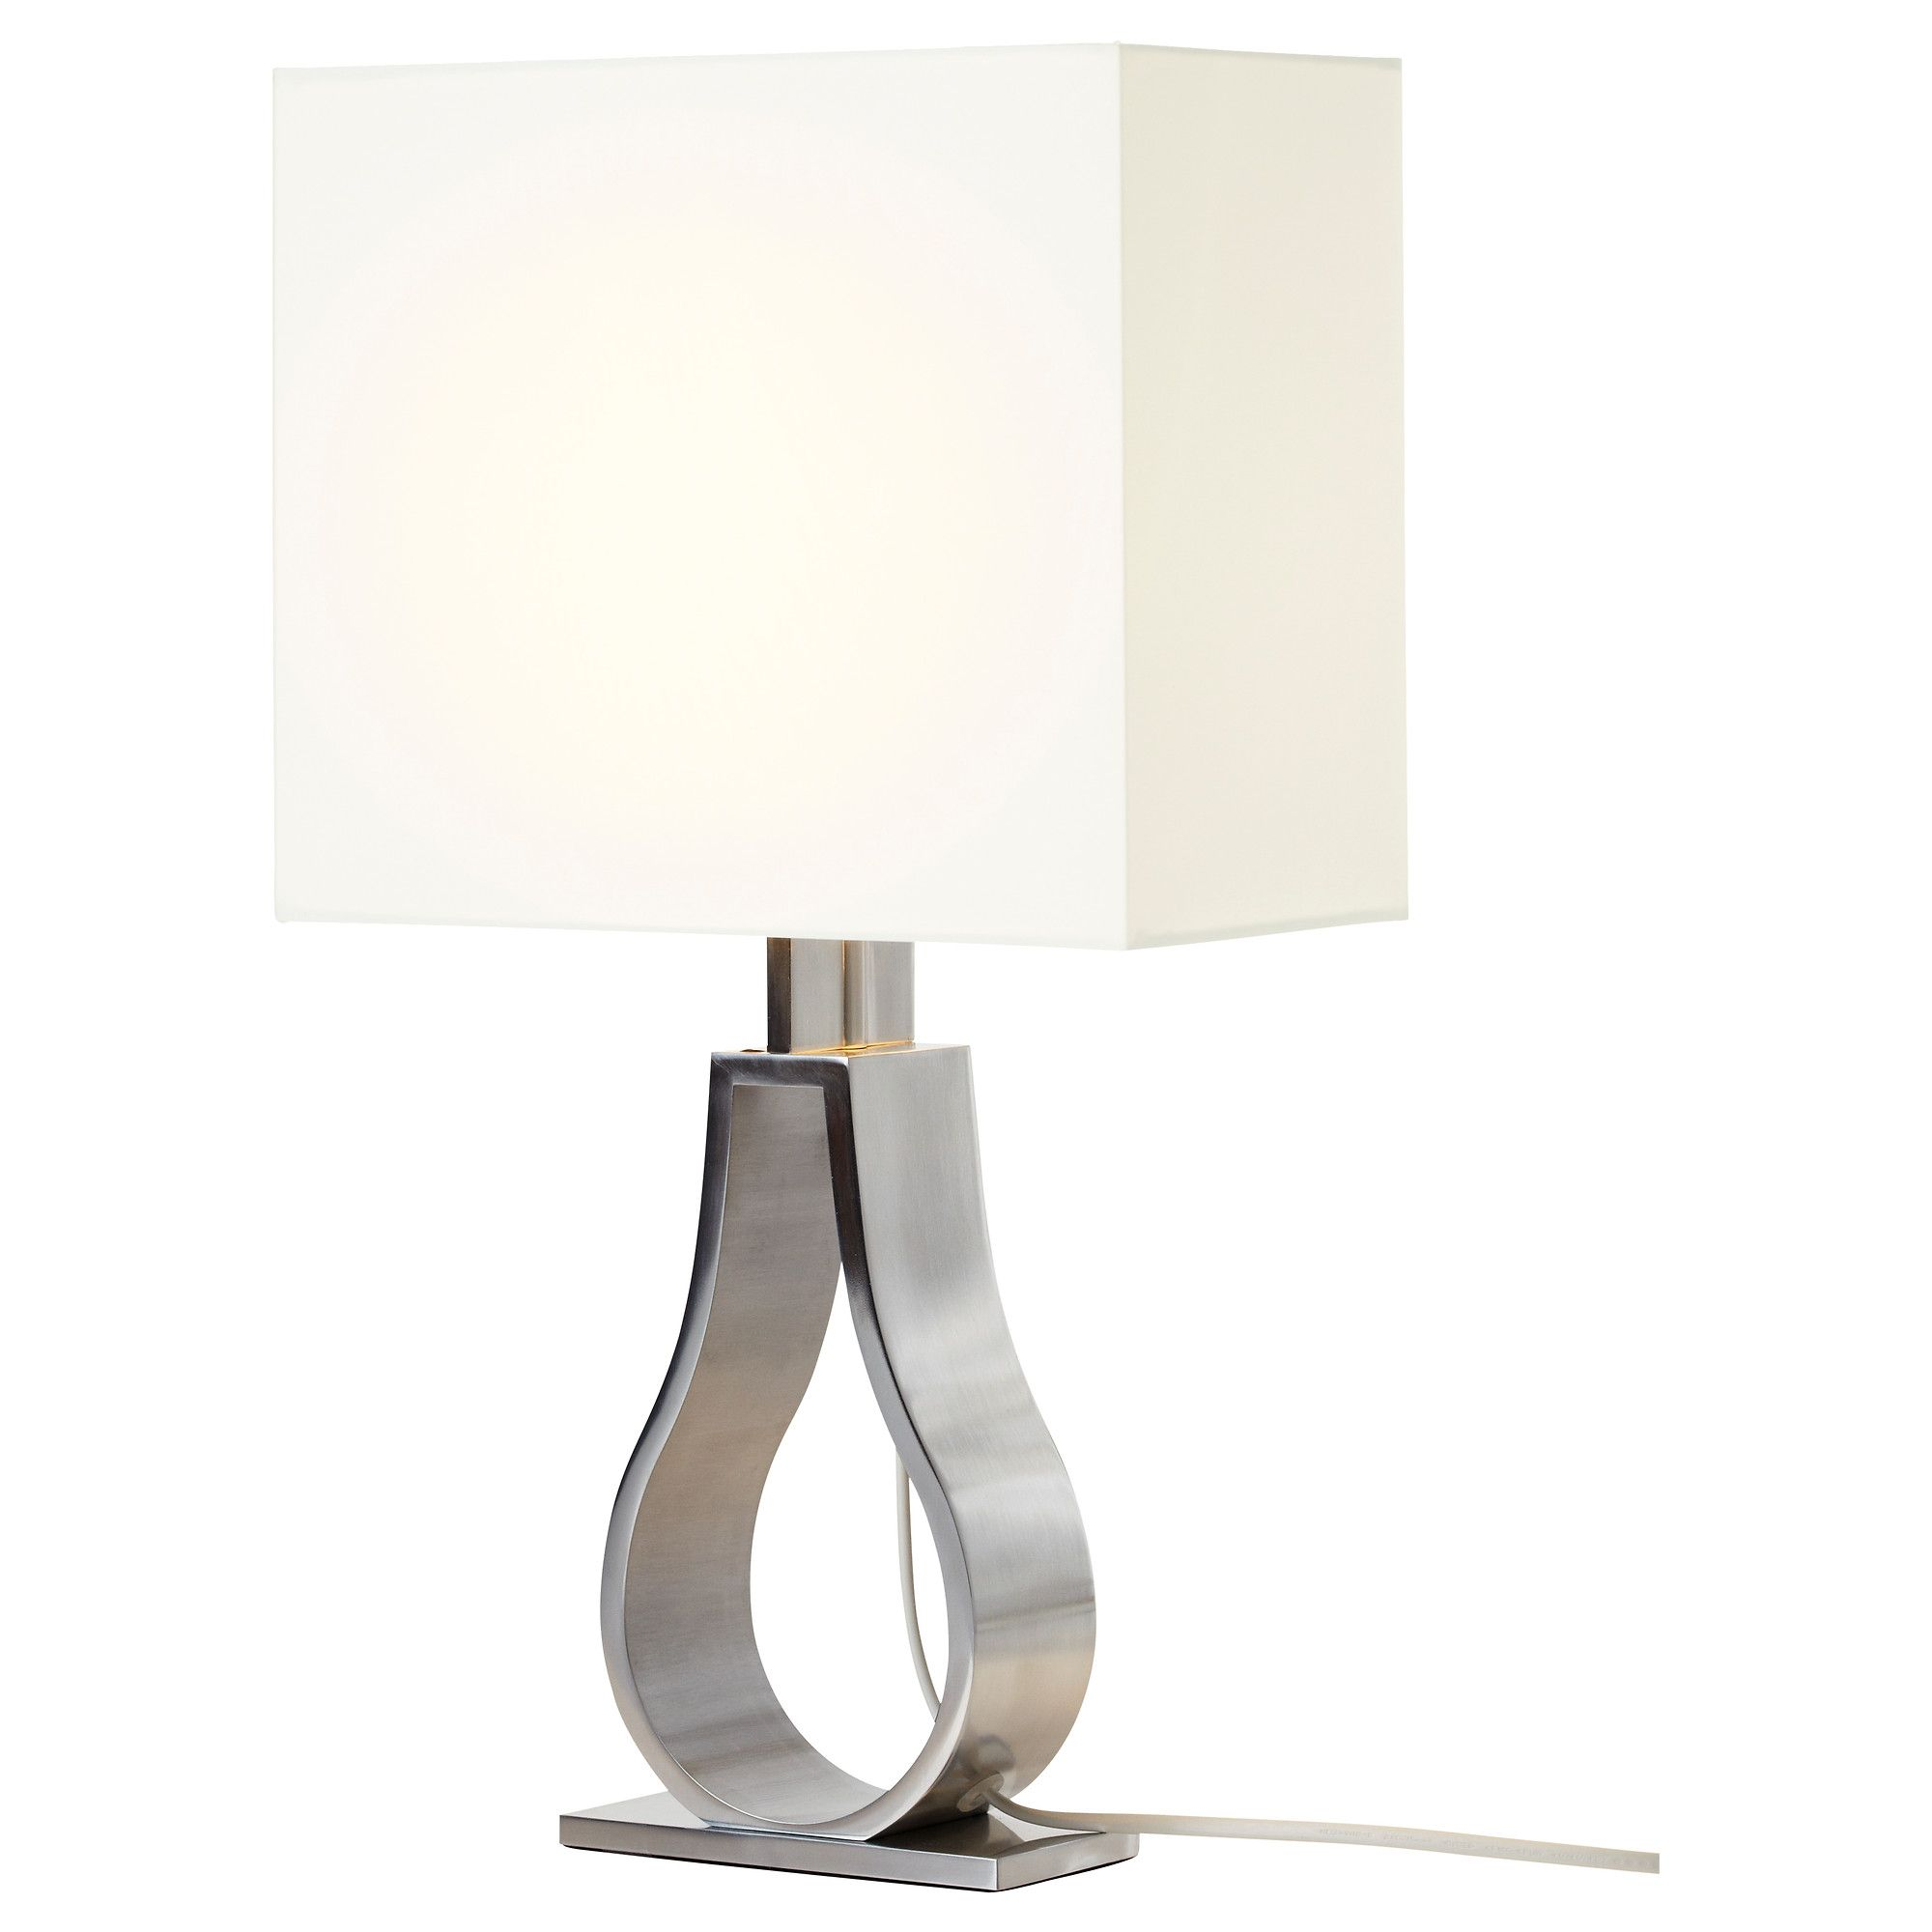 klabb tafellamp - beige - ikea | products | pinterest | lights